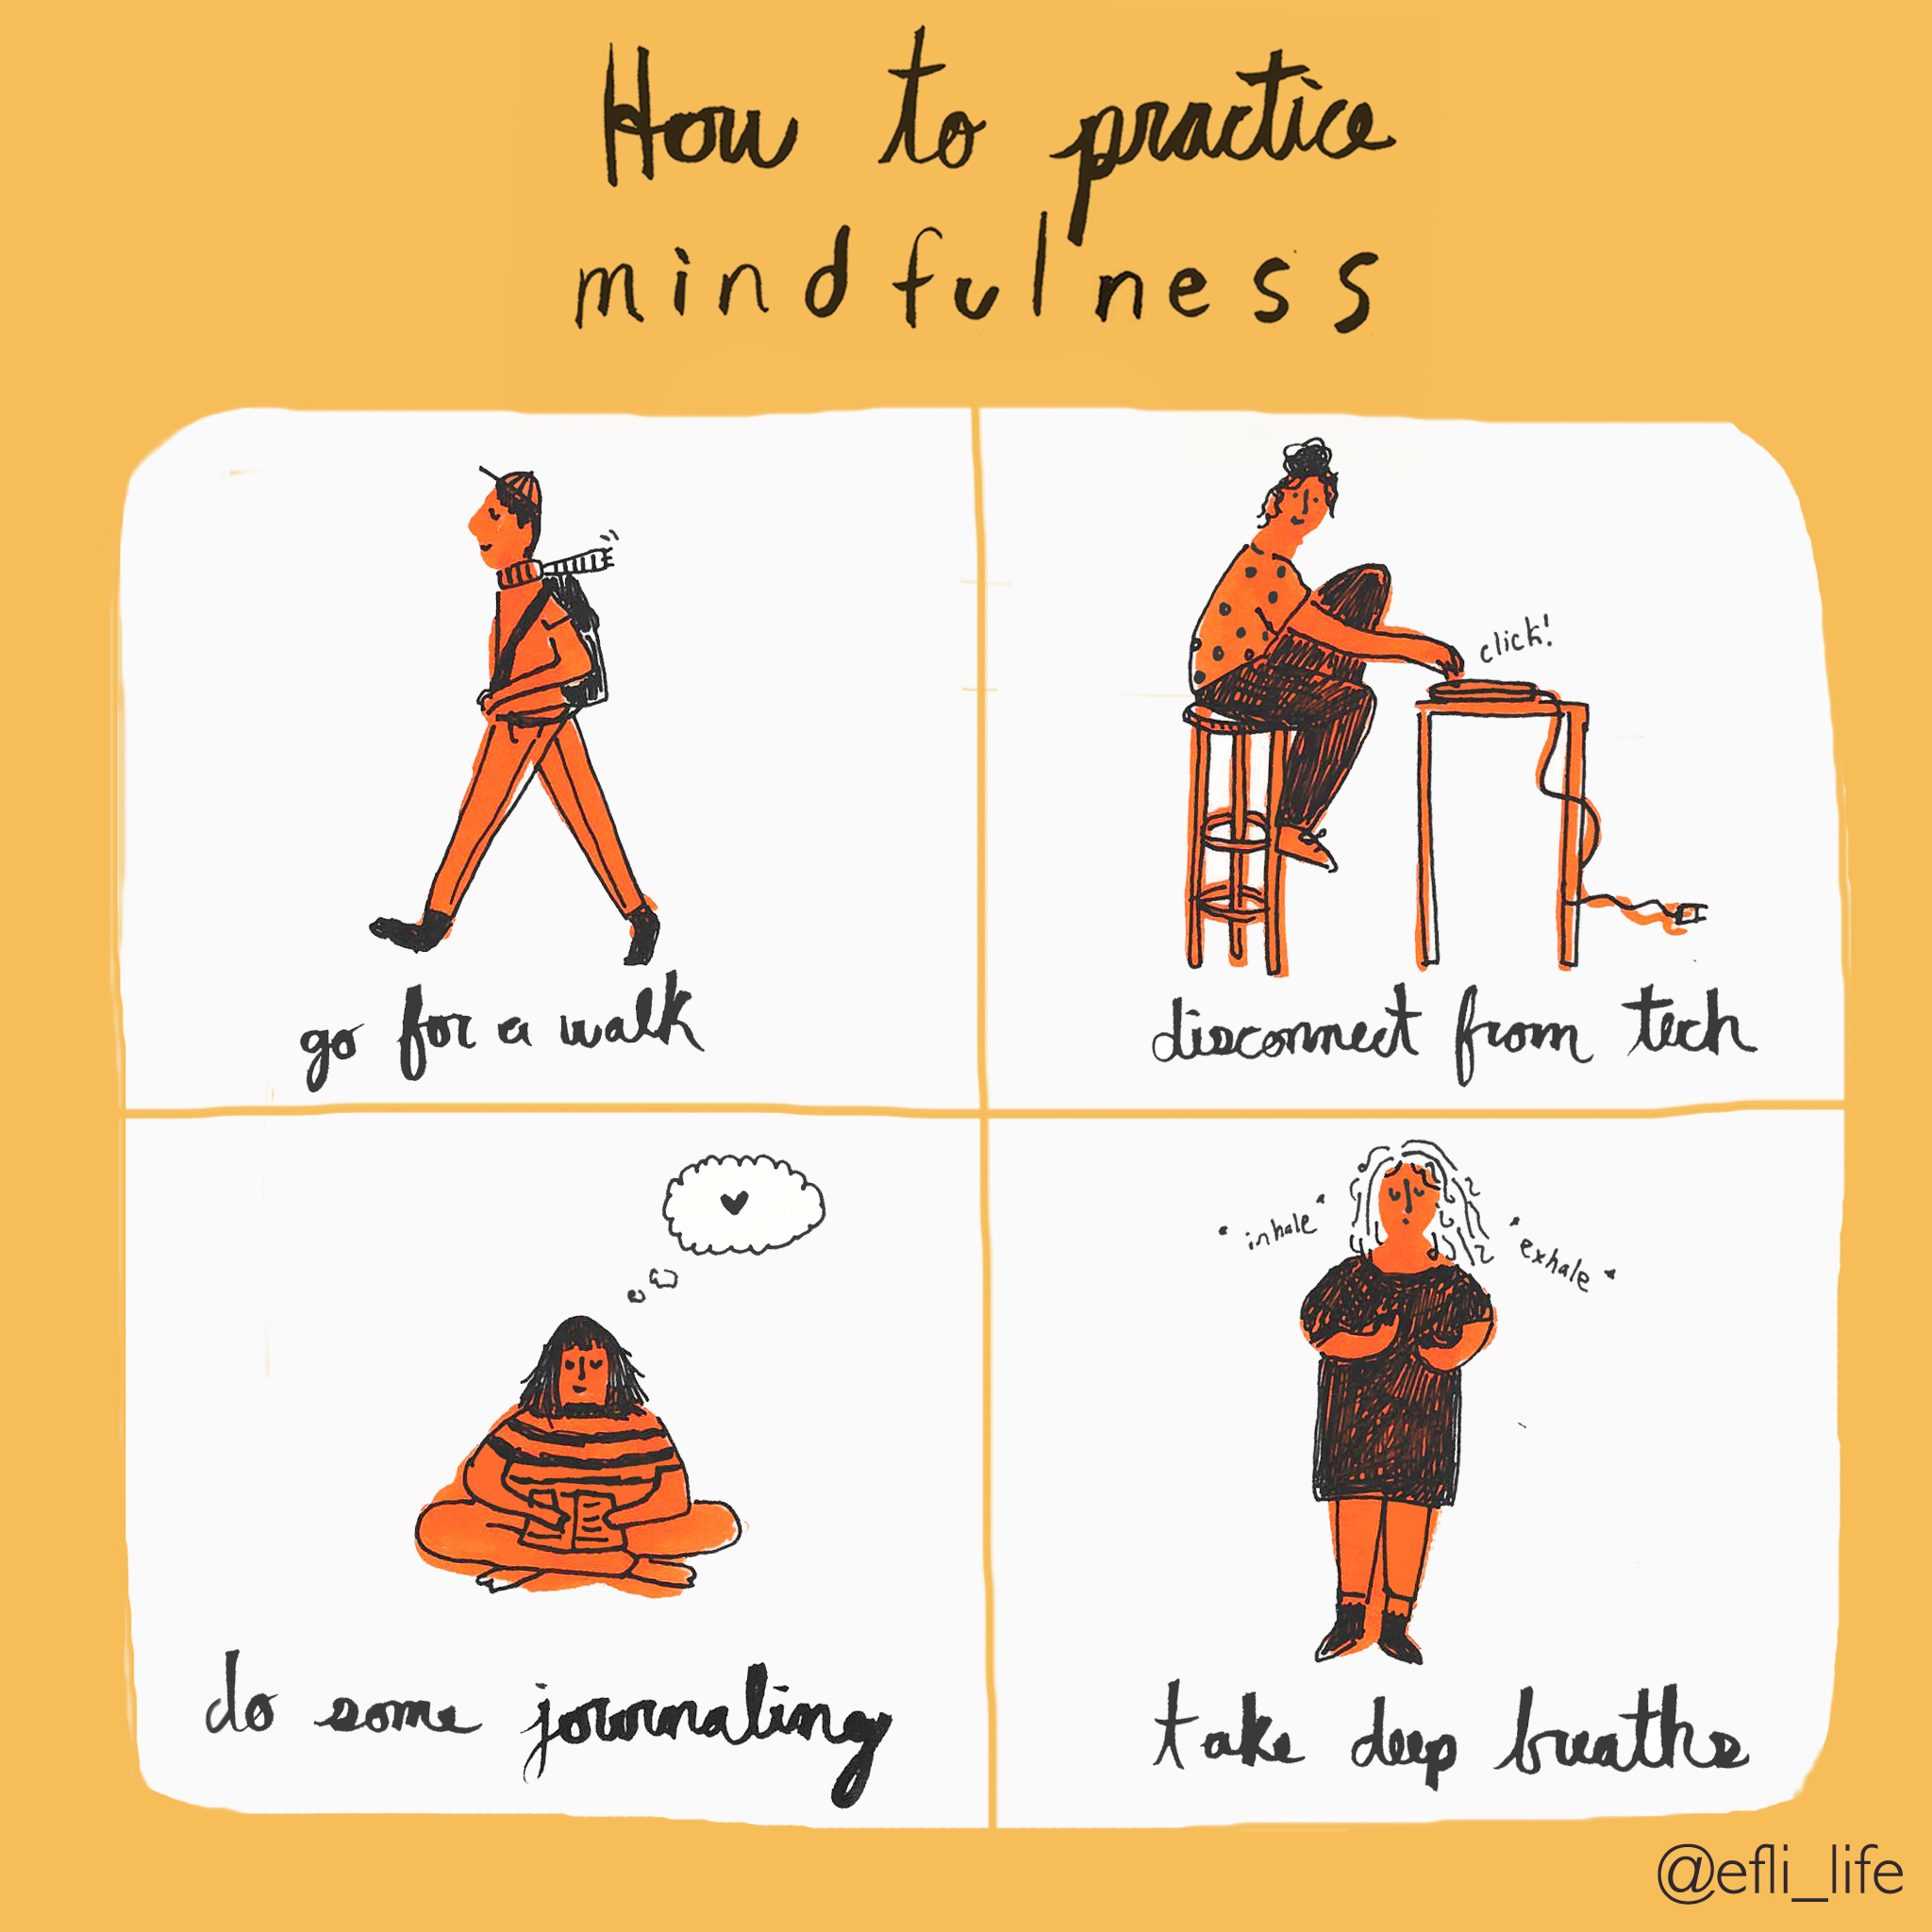 How to Practice Mindfulness by Grace Ludmer